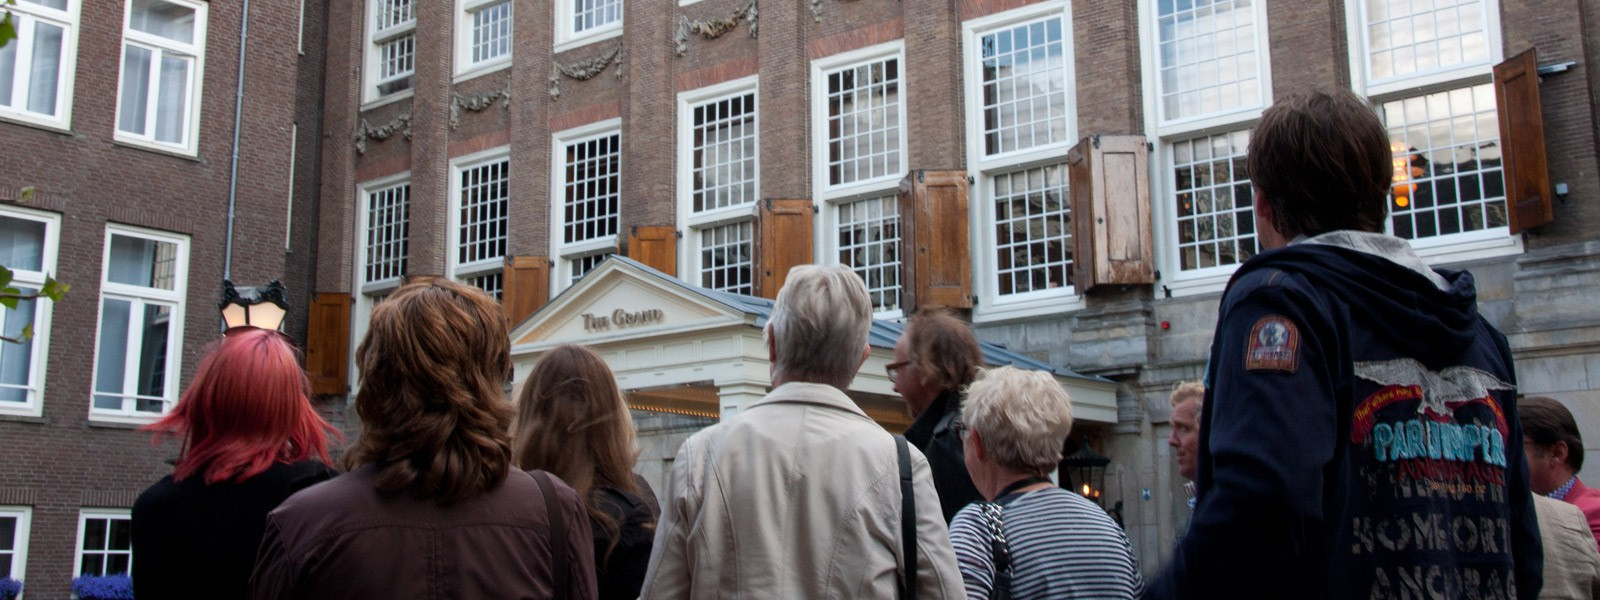 guided city walks e.g. in Amsterdam, Rotterdam, The Hague, Utrecht, Maastricht, Middelburg, Alkmaar, Edam, Leiden, and to many other interesting places book now